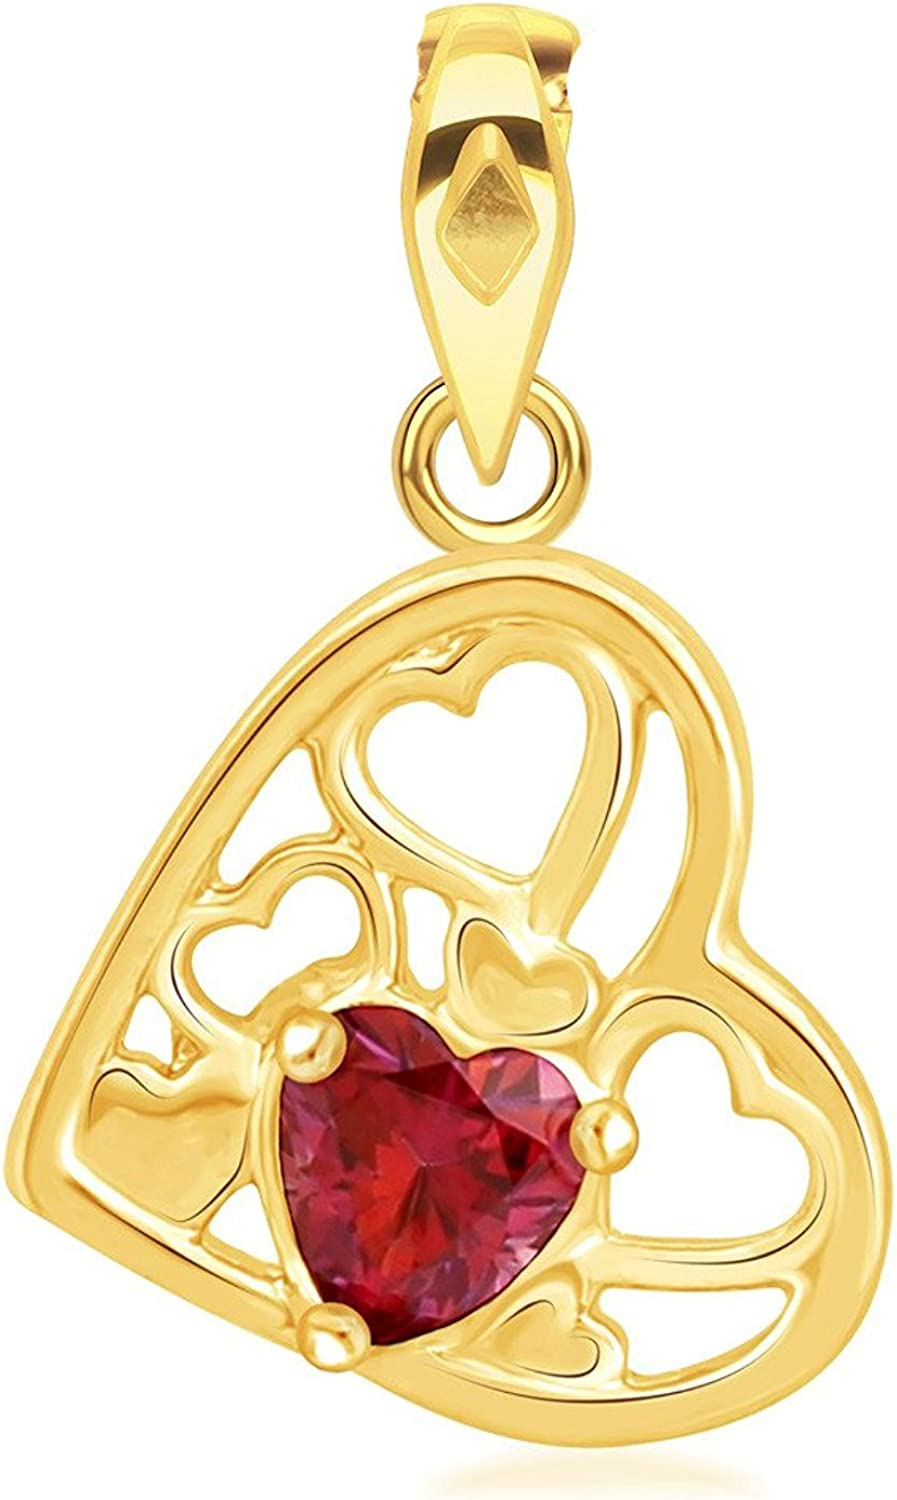 Ashley Jewels Simulated Pink Ruby Studded Fashion Love Promise Heart Pendant Necklace in 14K White Gold Plated With Box Chain